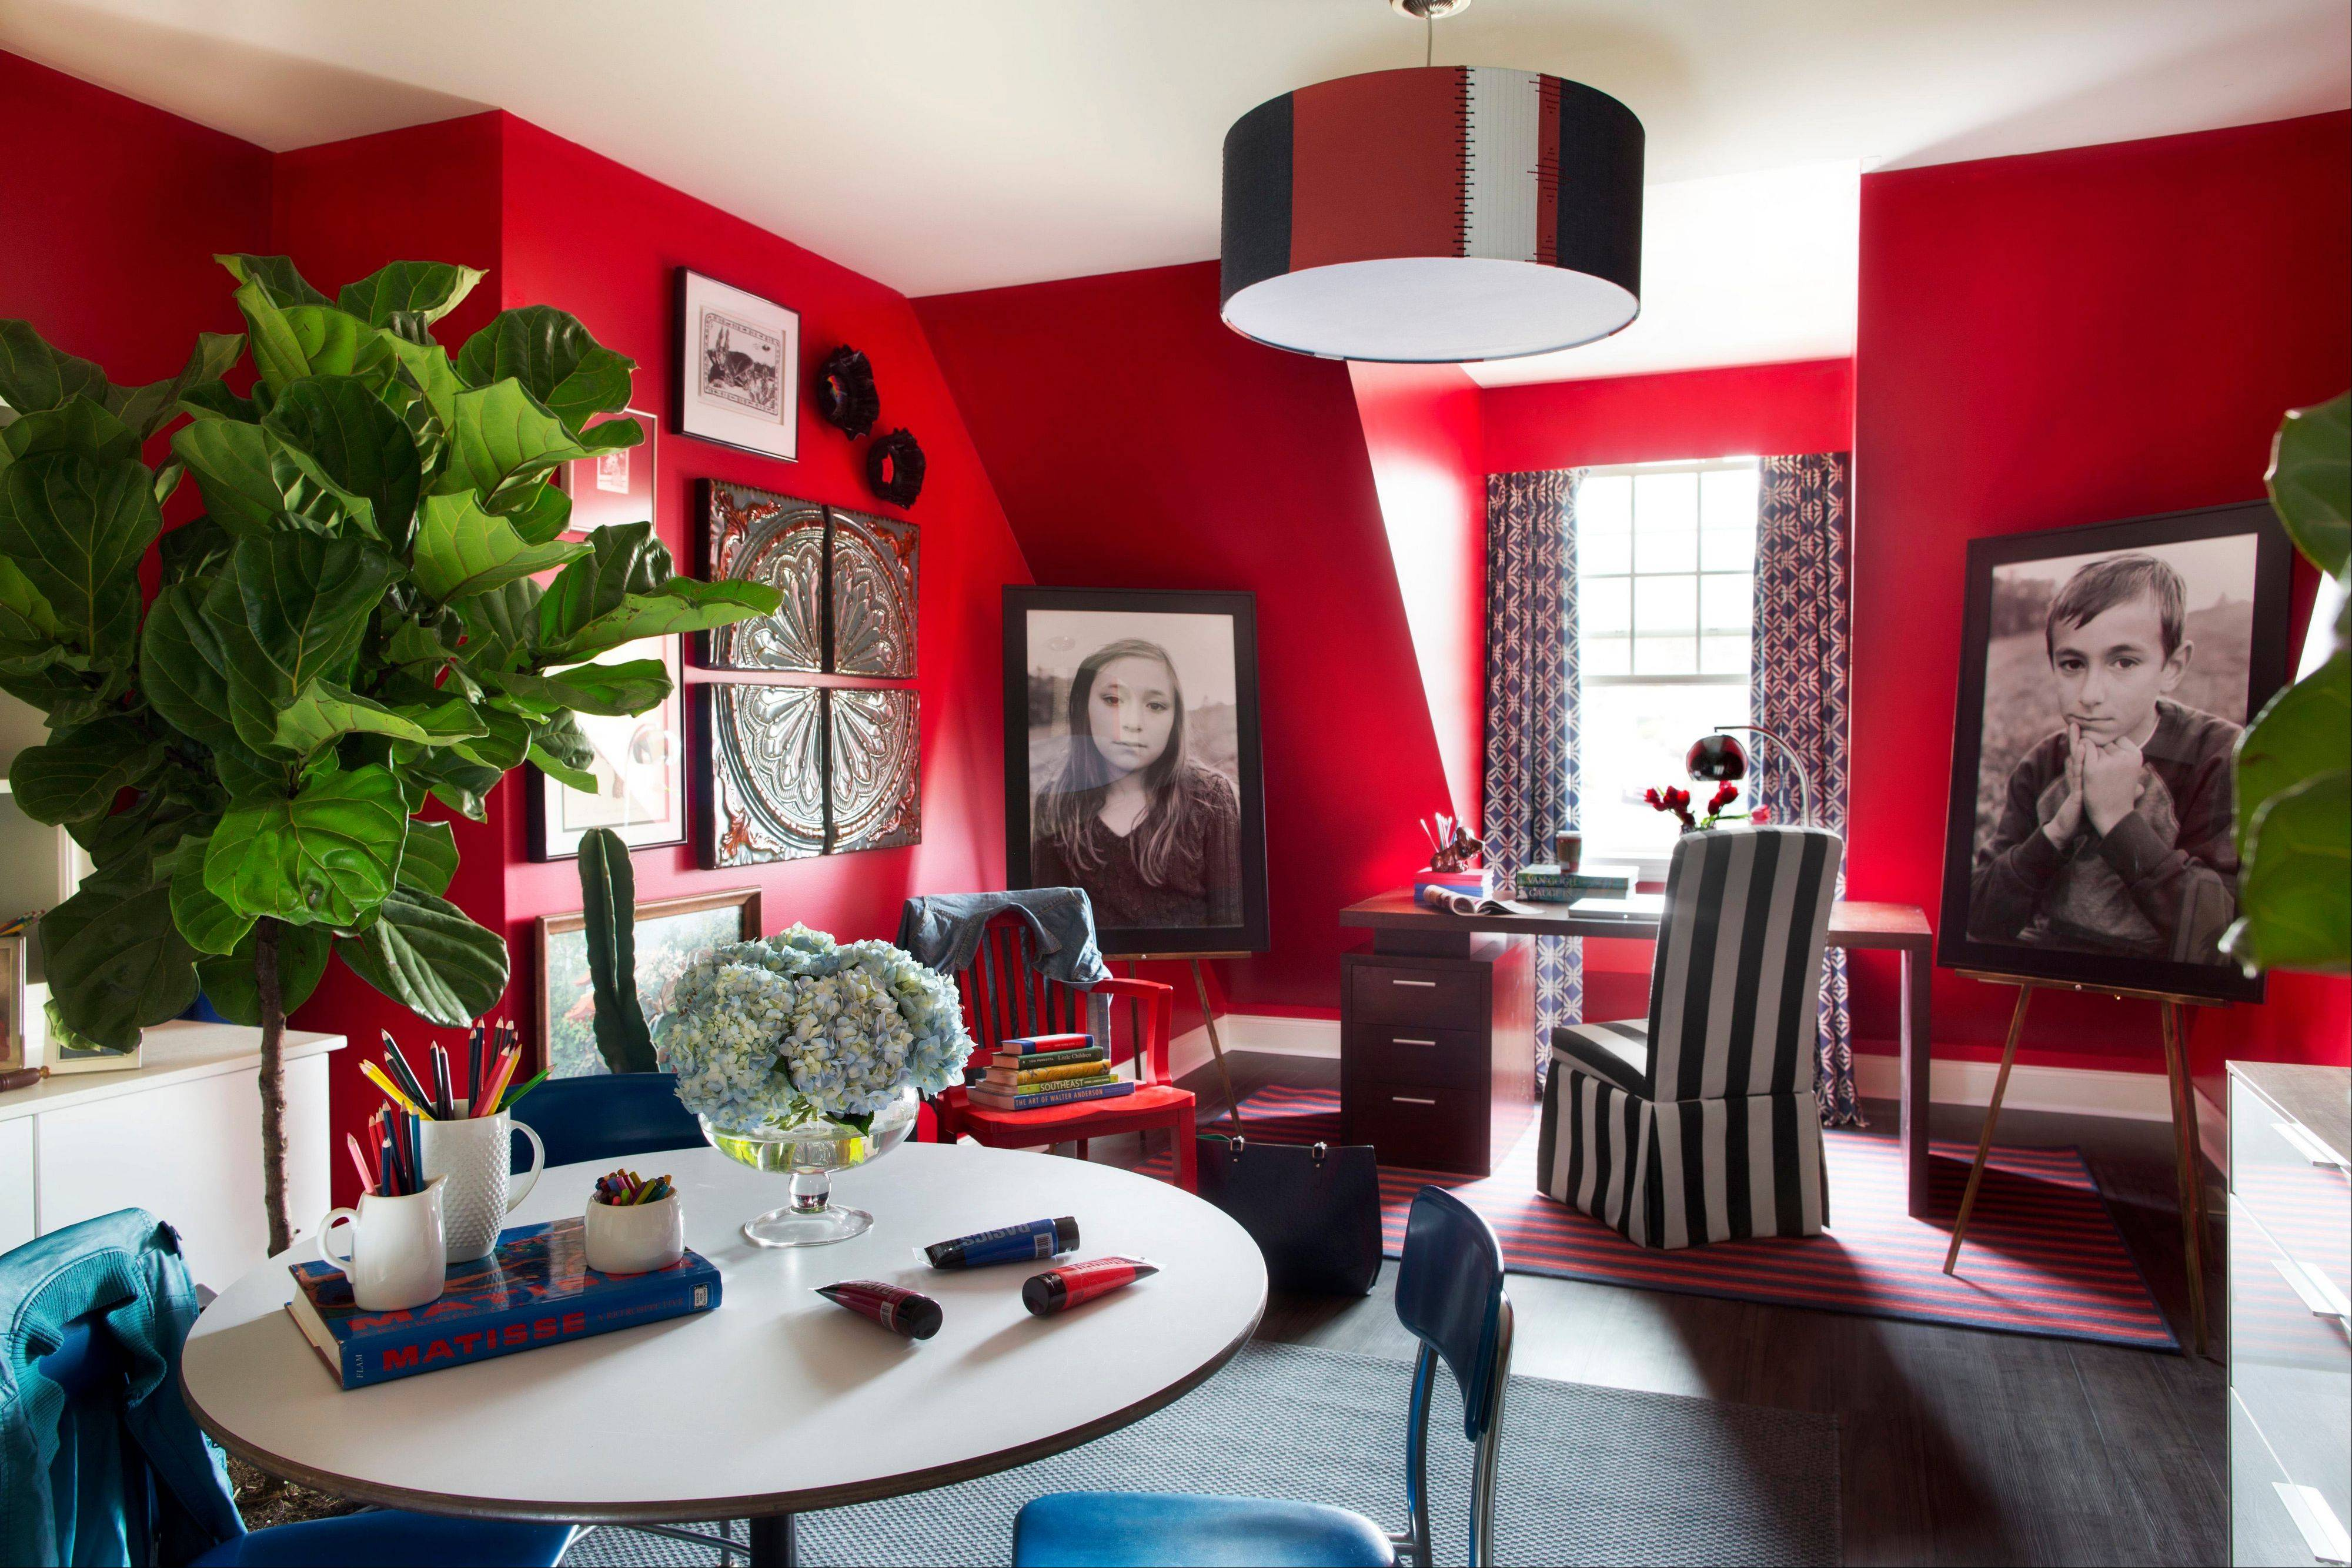 Designer Brian Patrick Flynn turned a disorganized catchall room into a colorful, creative space. Flynn uses bold color as a backdrop, then unites the disparate pieces with touches of the same accent color.